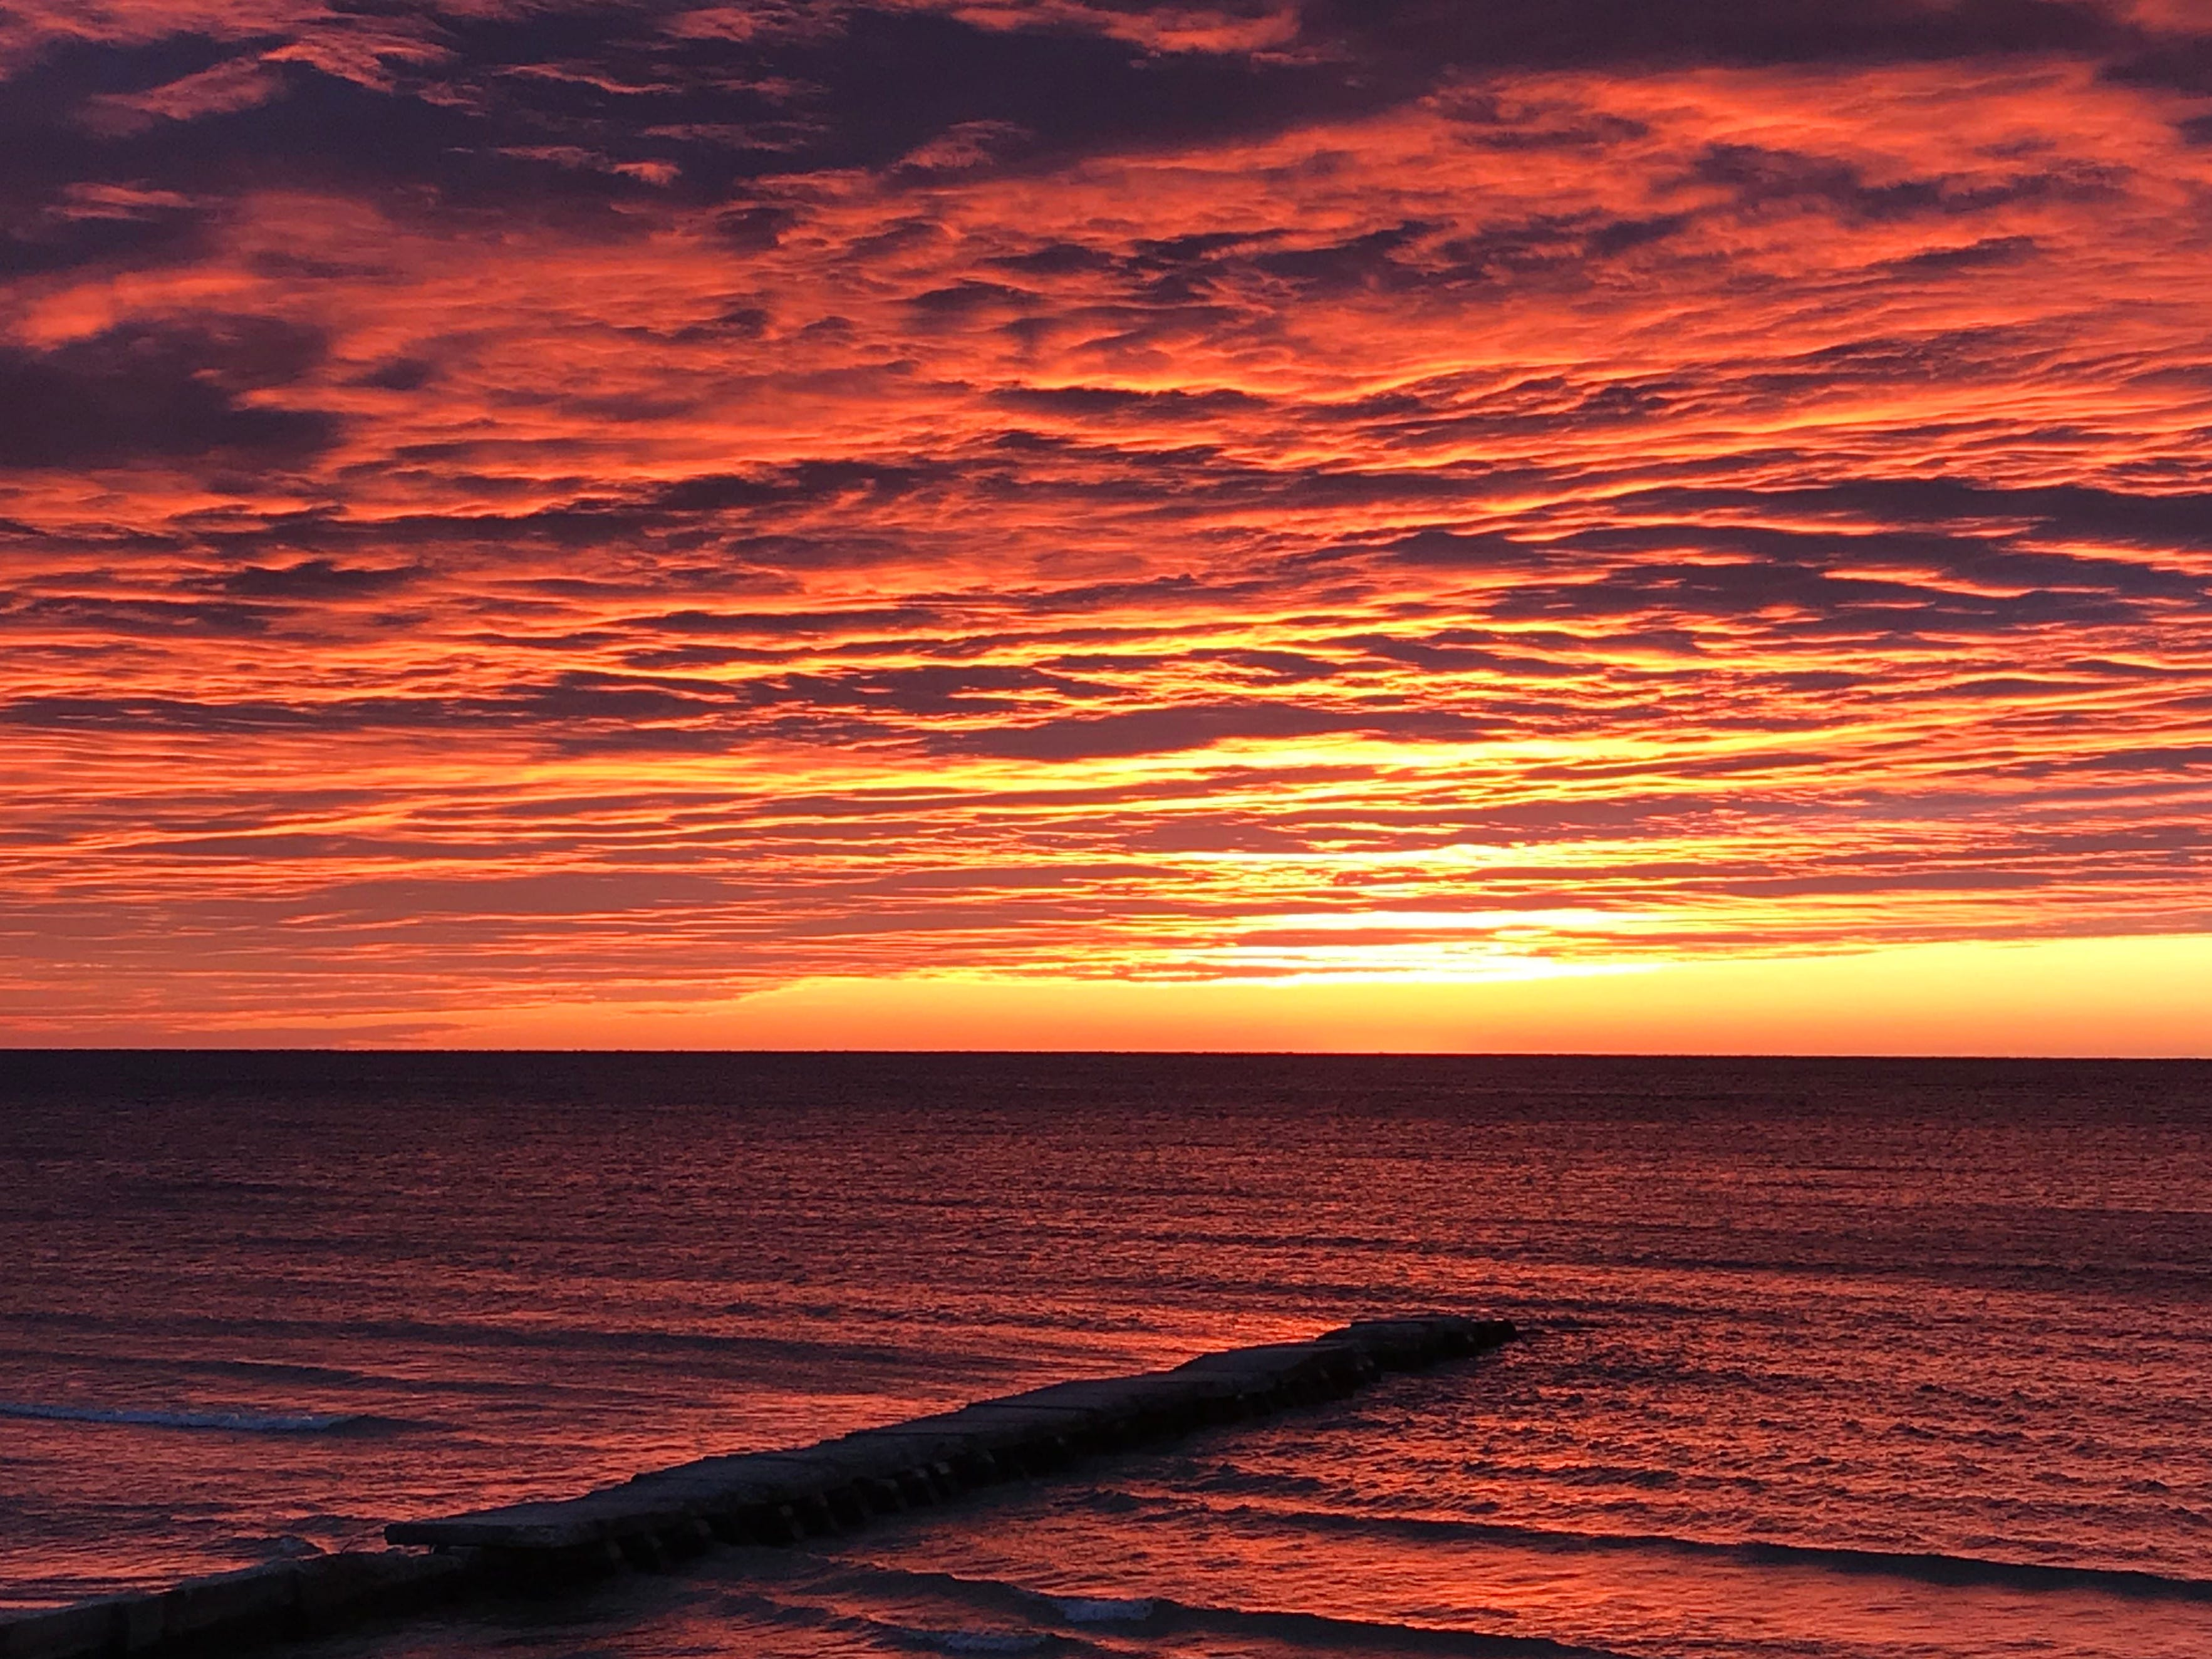 Clouds glow with morning light as a jetty juts out to Lake Michigan along Broughton Drive, Tuesday, October 16, 2018, in Sheboygan, Wis.